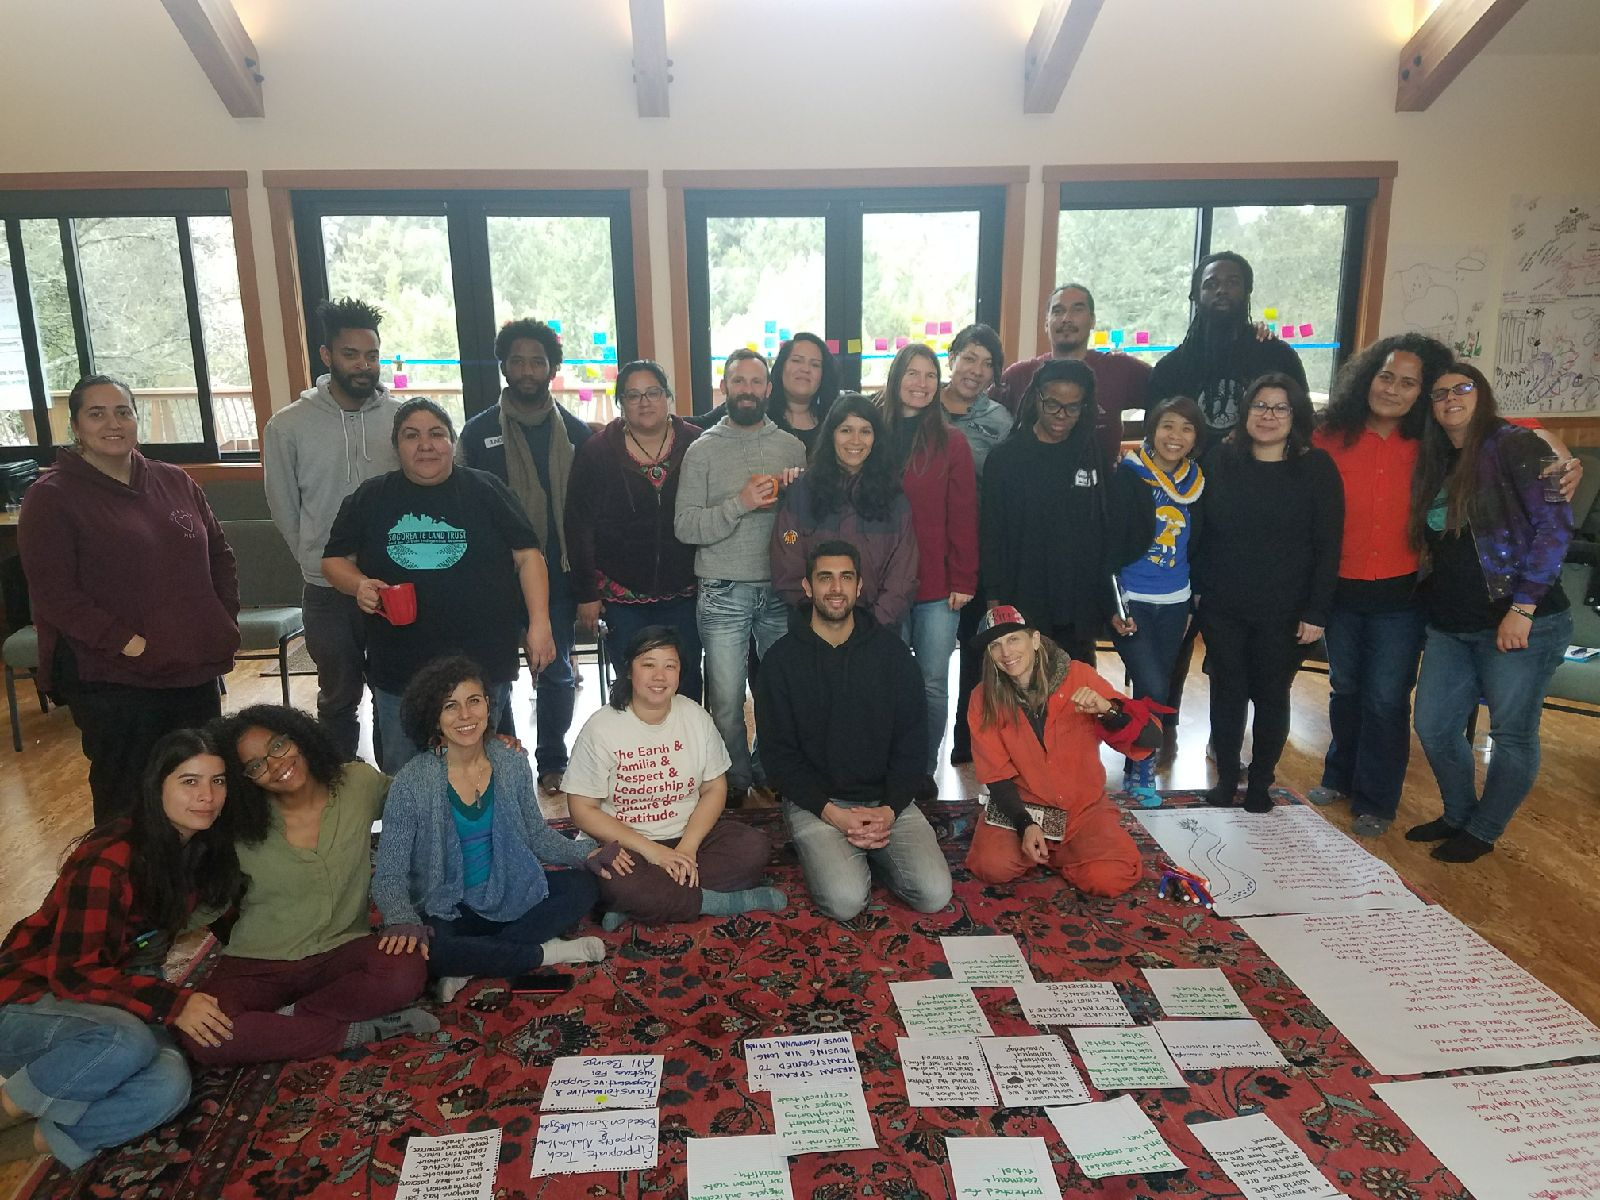 Participants at the Bay Area Land Justice Convening